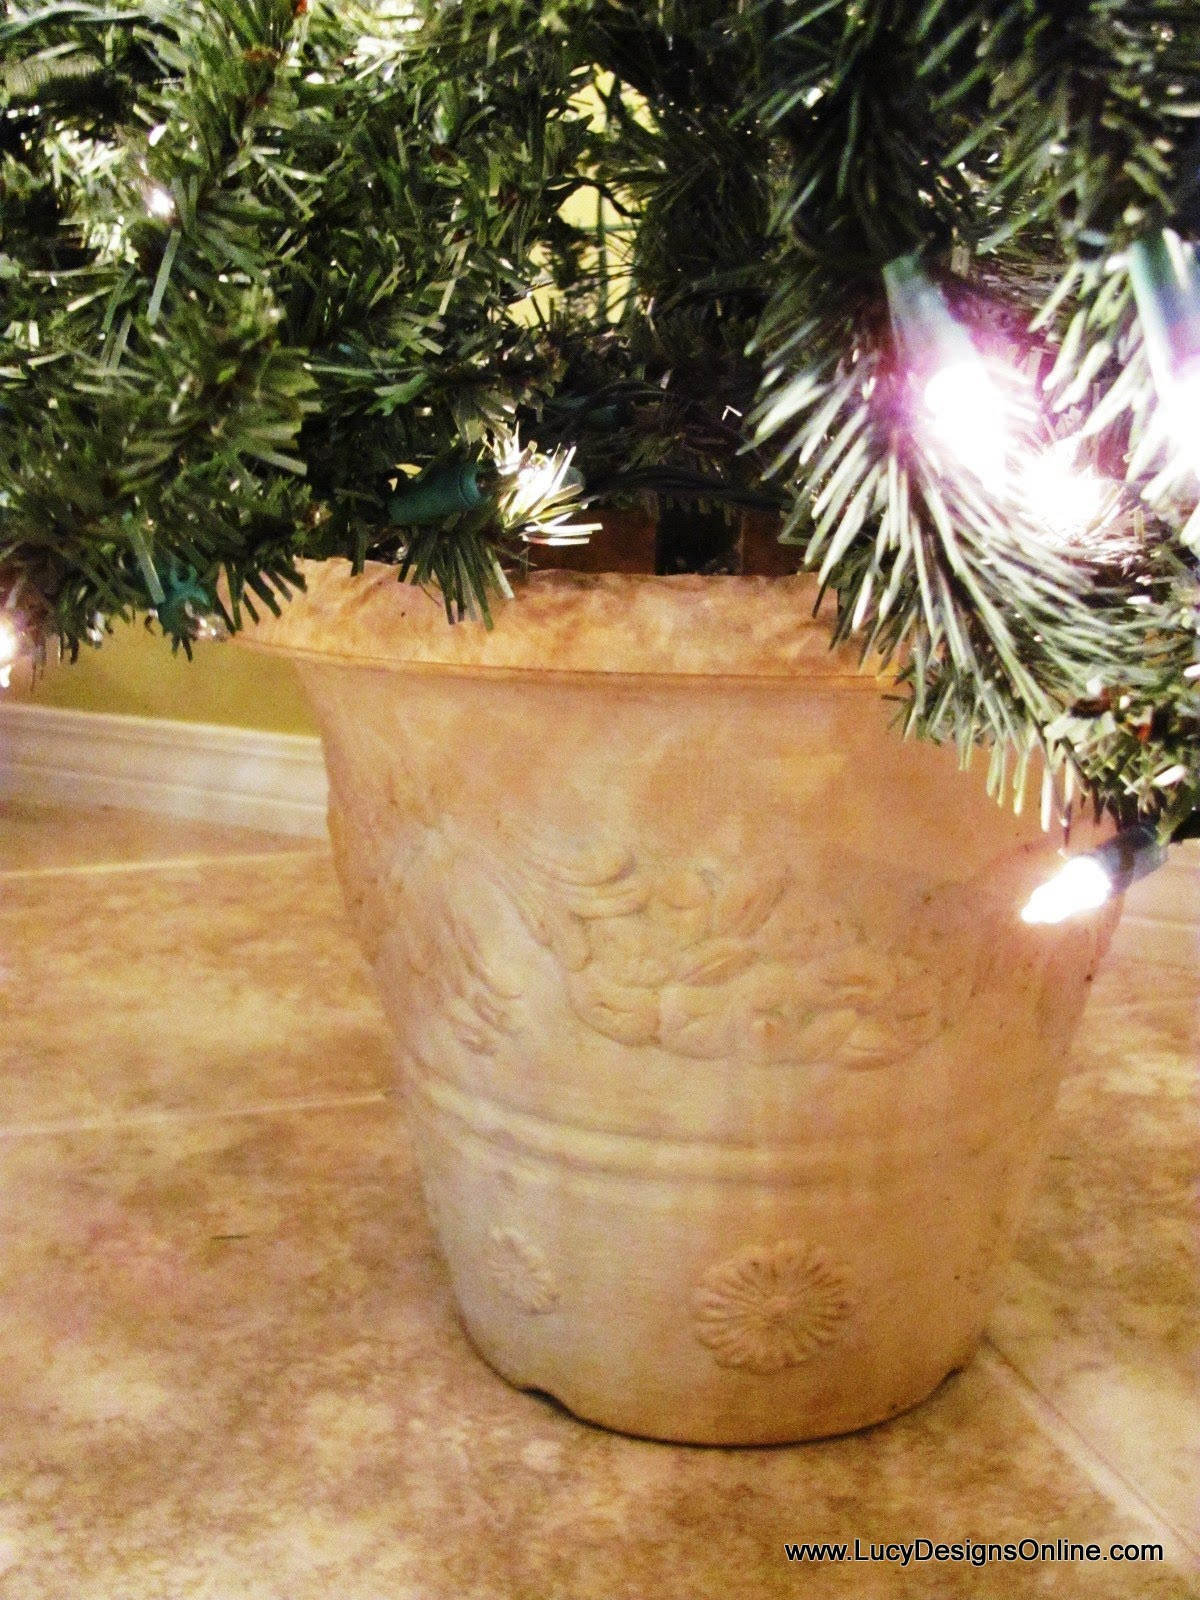 Artificial christmas tree in a planter pot diy lucy designs diy how to christmas tree in a planter pot solutioingenieria